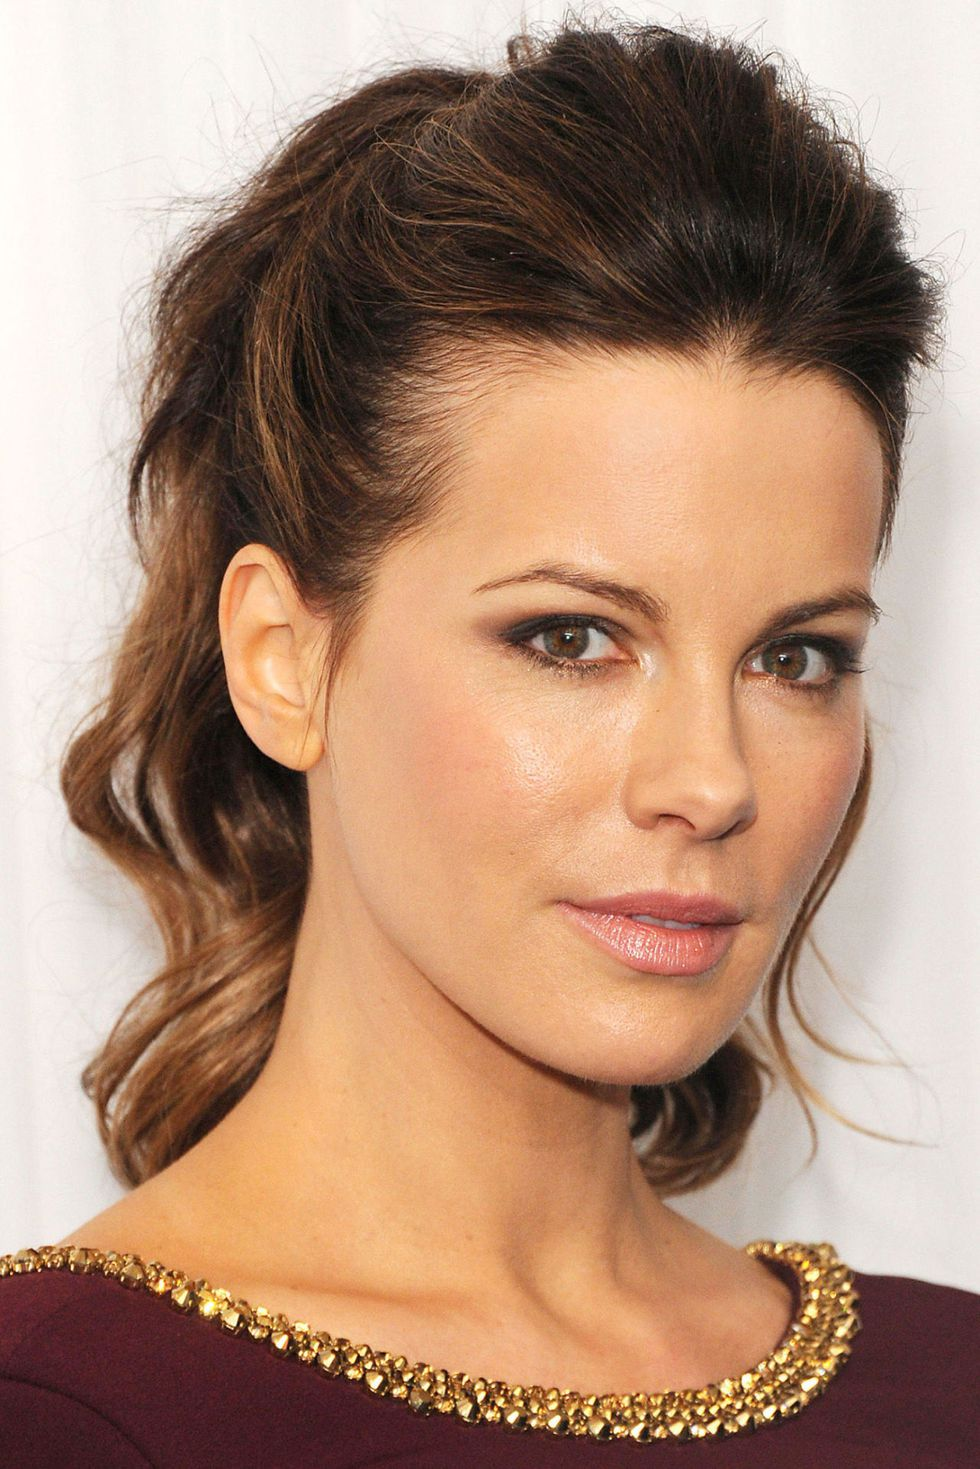 wedding-guest-hair-ponytail-style-beauty-katebeckinsale-high-wavy.jpg